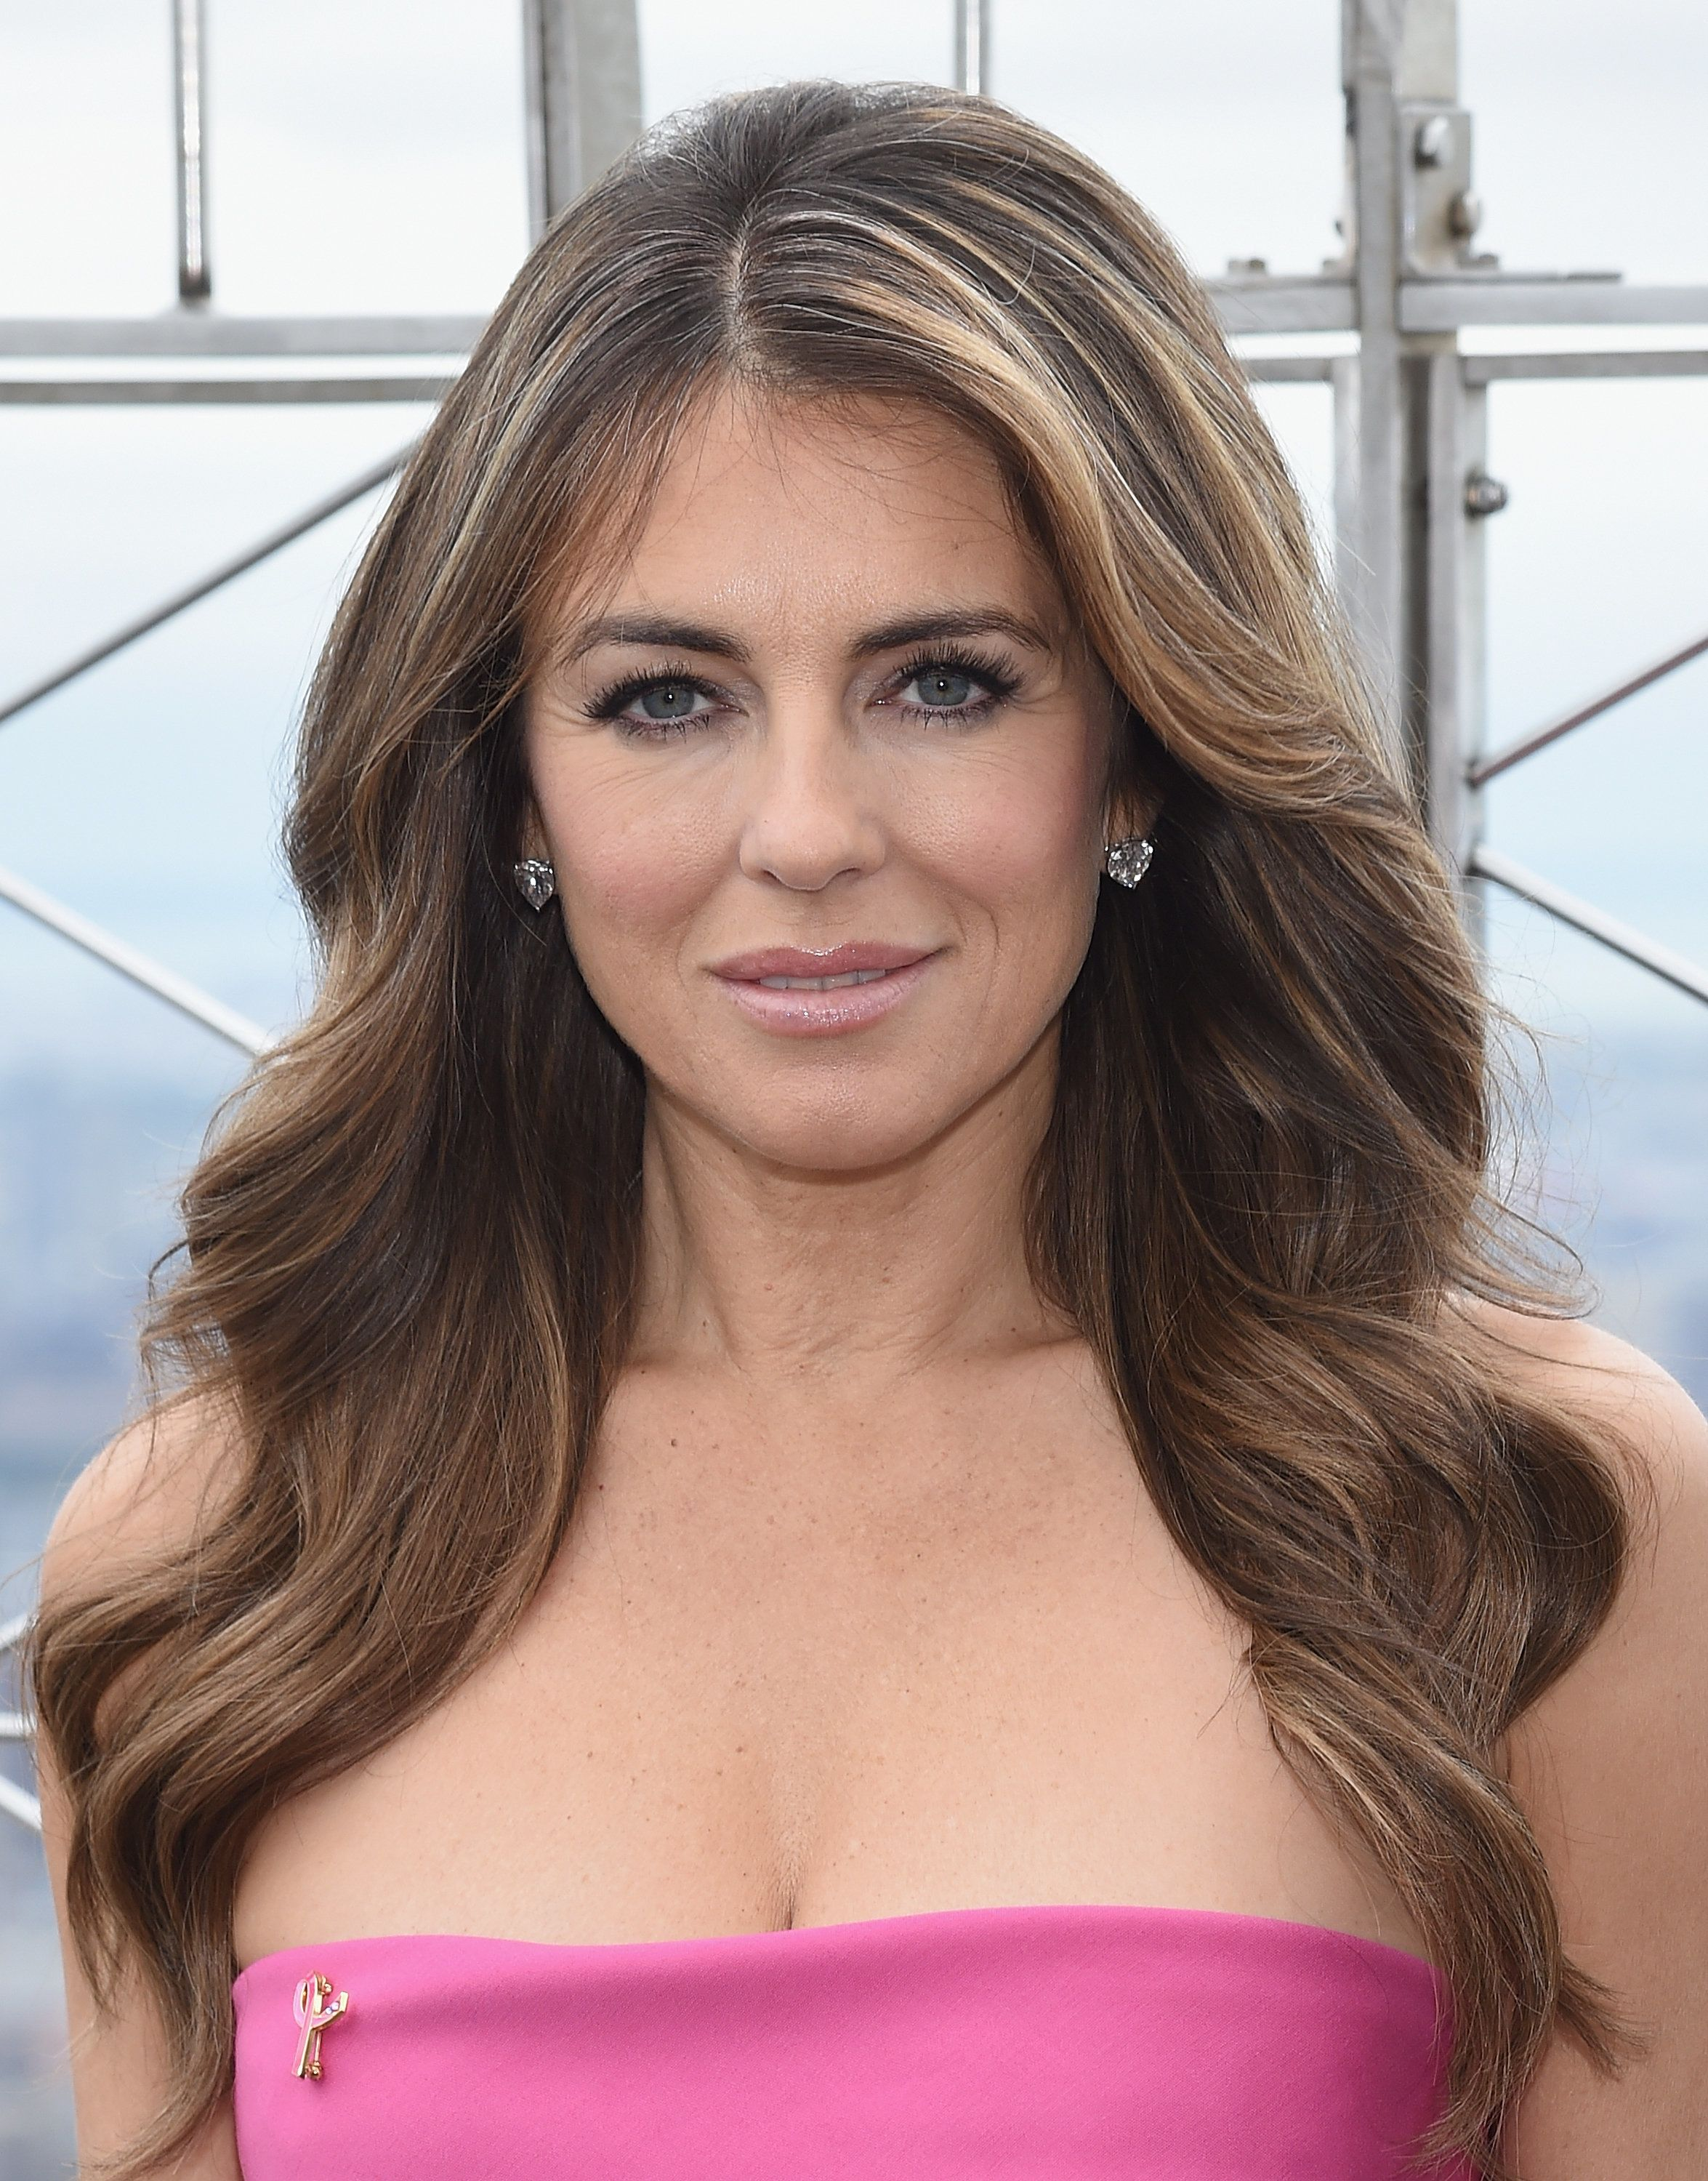 NEW YORK, NY - OCTOBER 01:  Elizabeth Hurley attends Elizabeth Hurley and William P. Lauder Light The Empire State Building Pink at The Empire State Building on October 1, 2015 in New York City.  (Photo by Dimitrios Kambouris/WireImage)